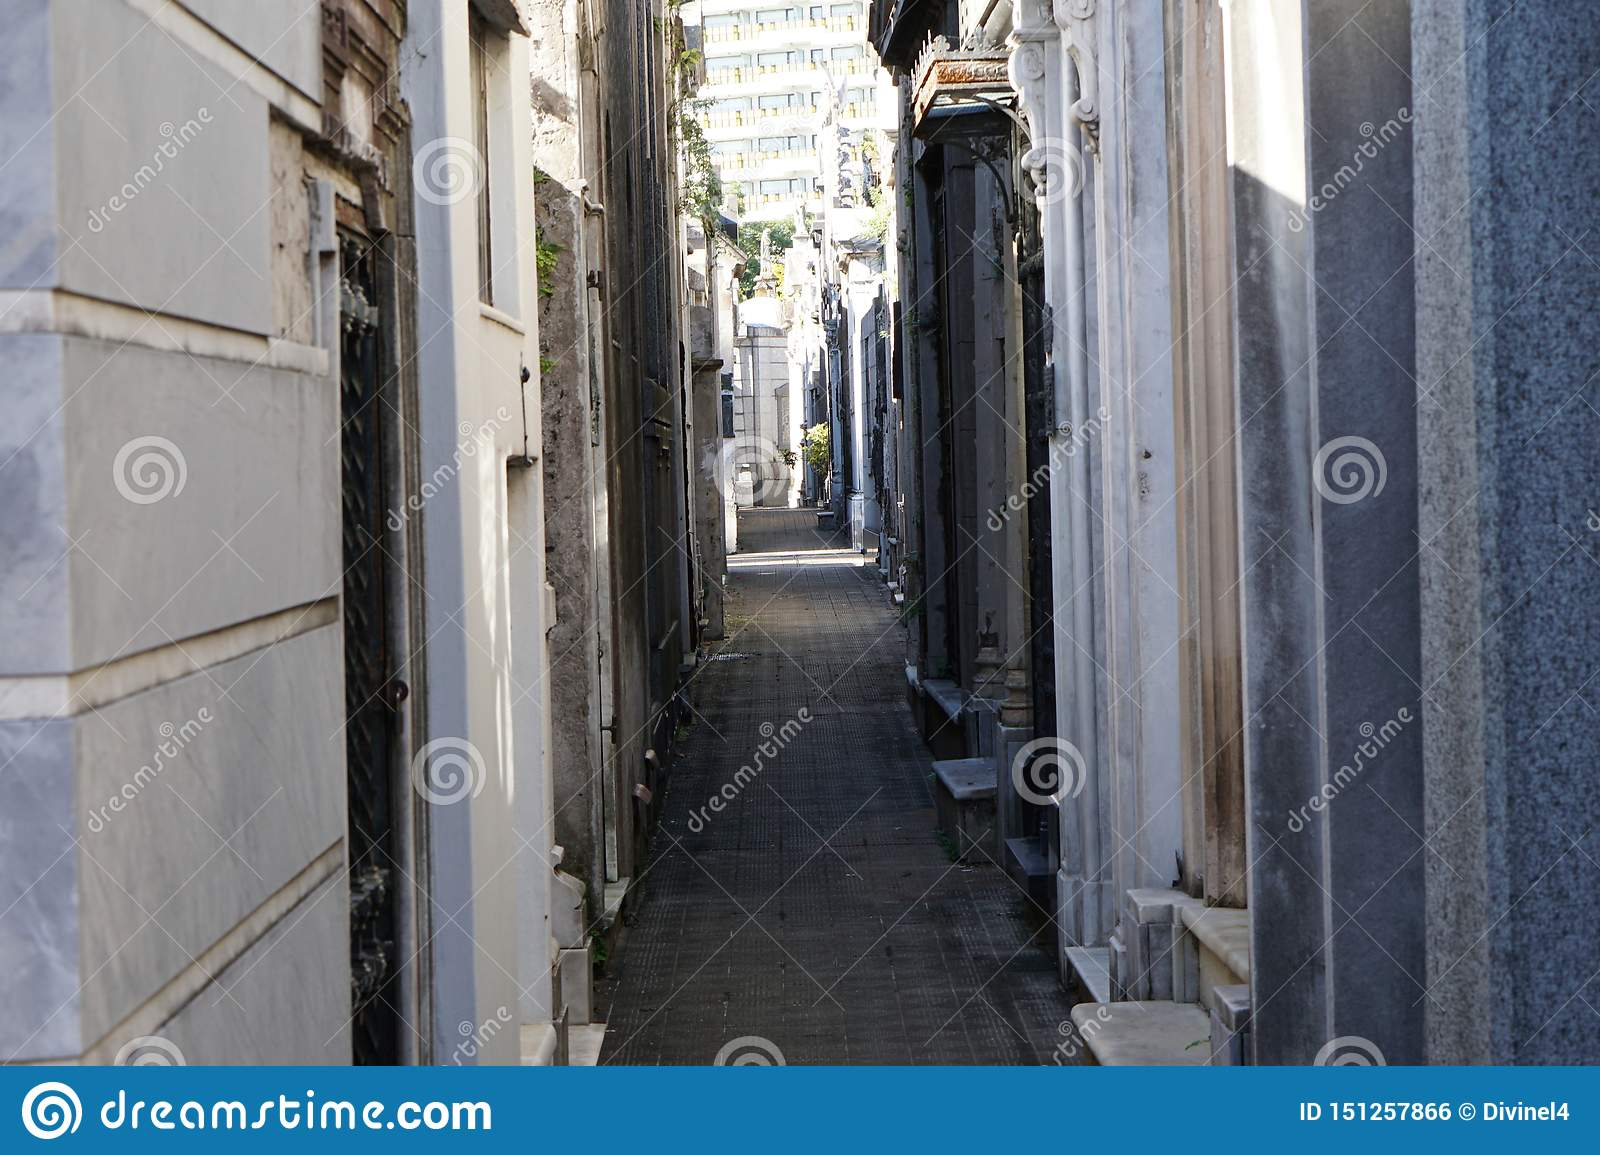 Narrow passage at cemetery in Recoleta